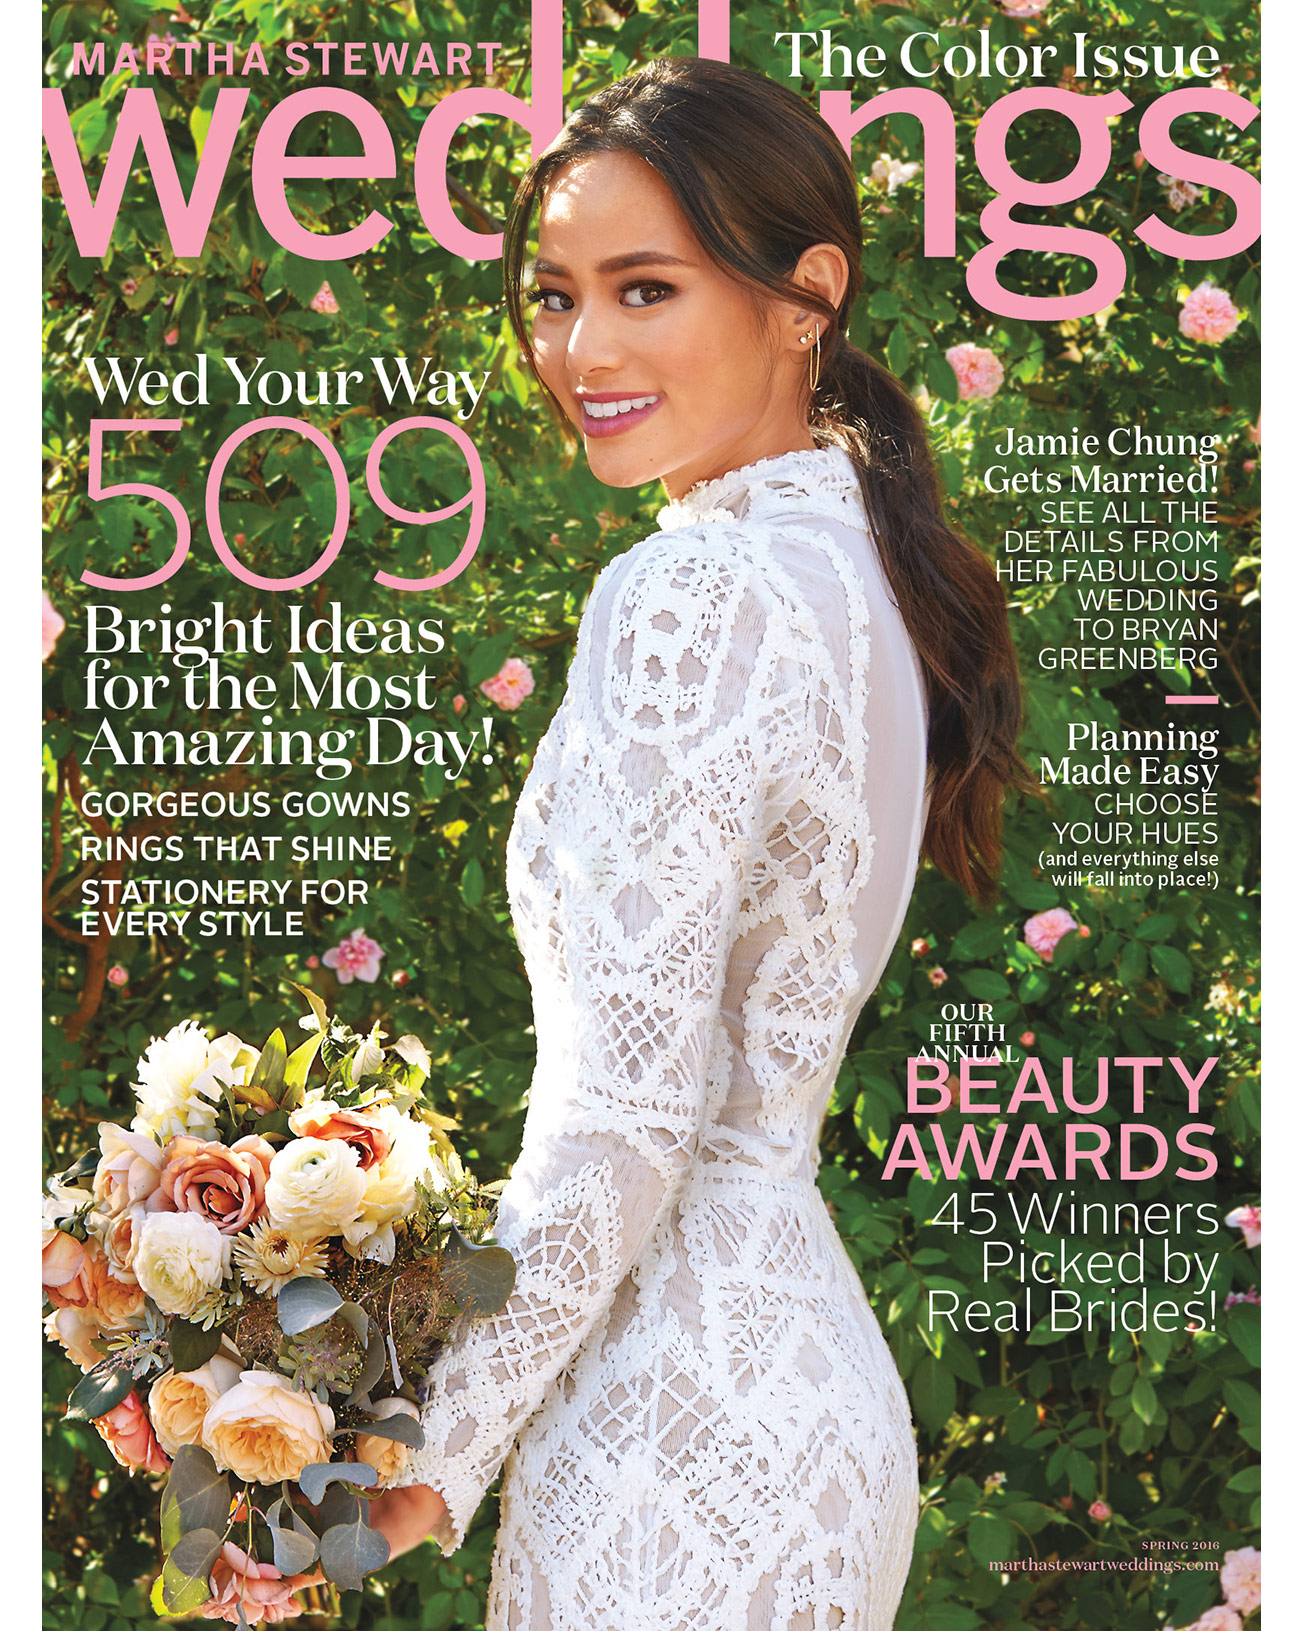 weddings-spring-2016-cover-with-text-w0316.jpg